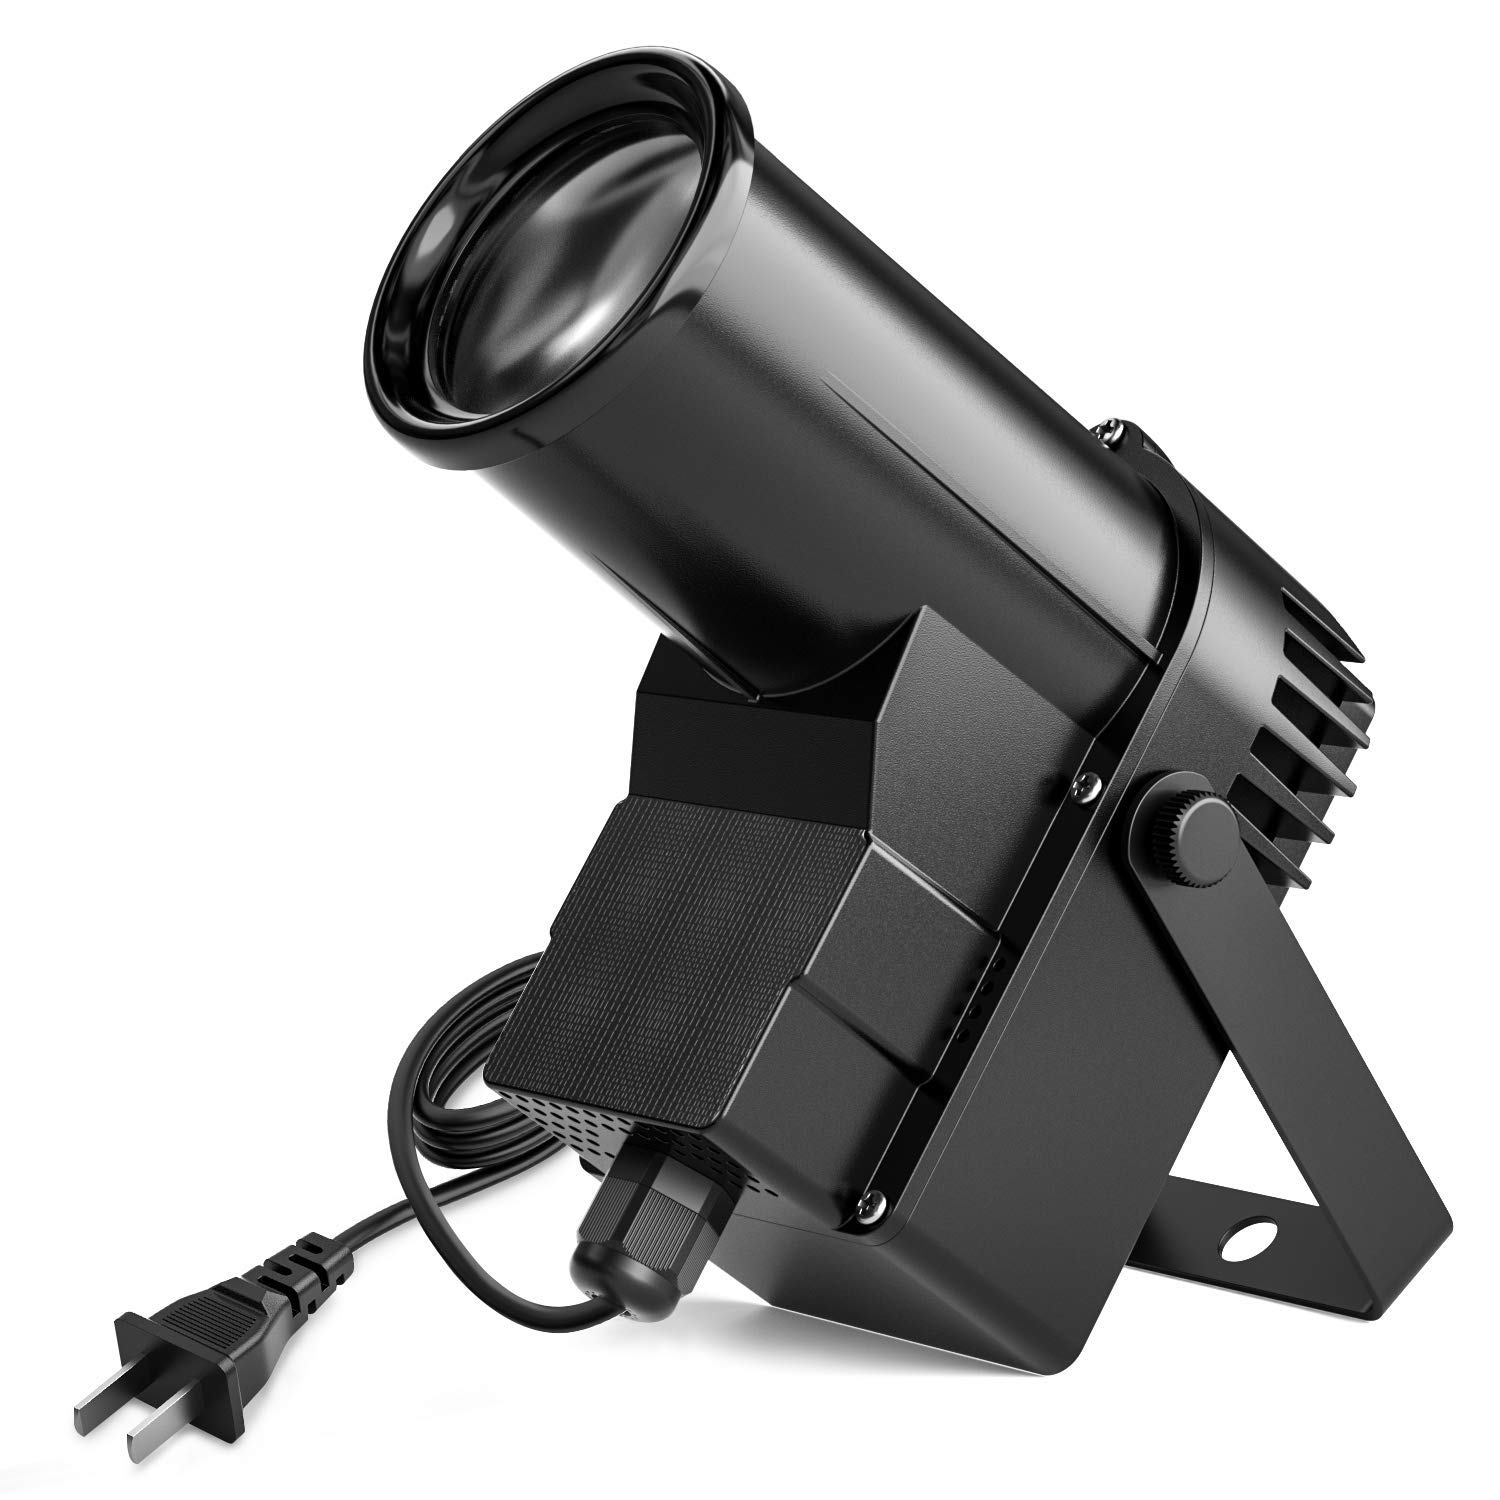 Donner Spotlight Stage Effect Pinspot LED Light DL-5 10W 6CH RGBW Auto/DMX DJ Lightning Control by Donner